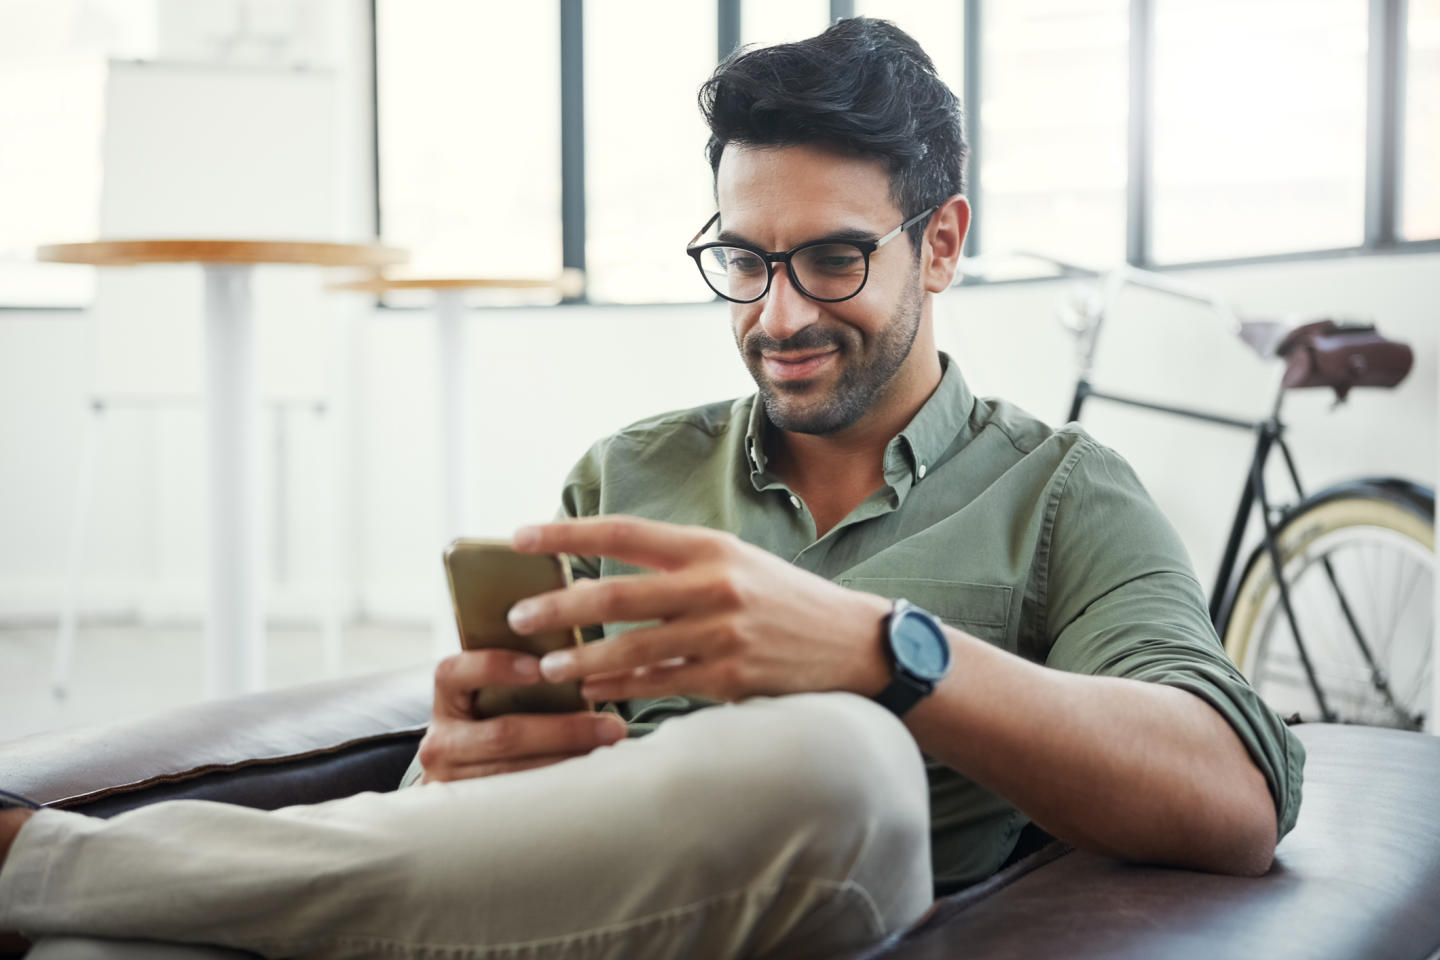 Man sitting at home using phone